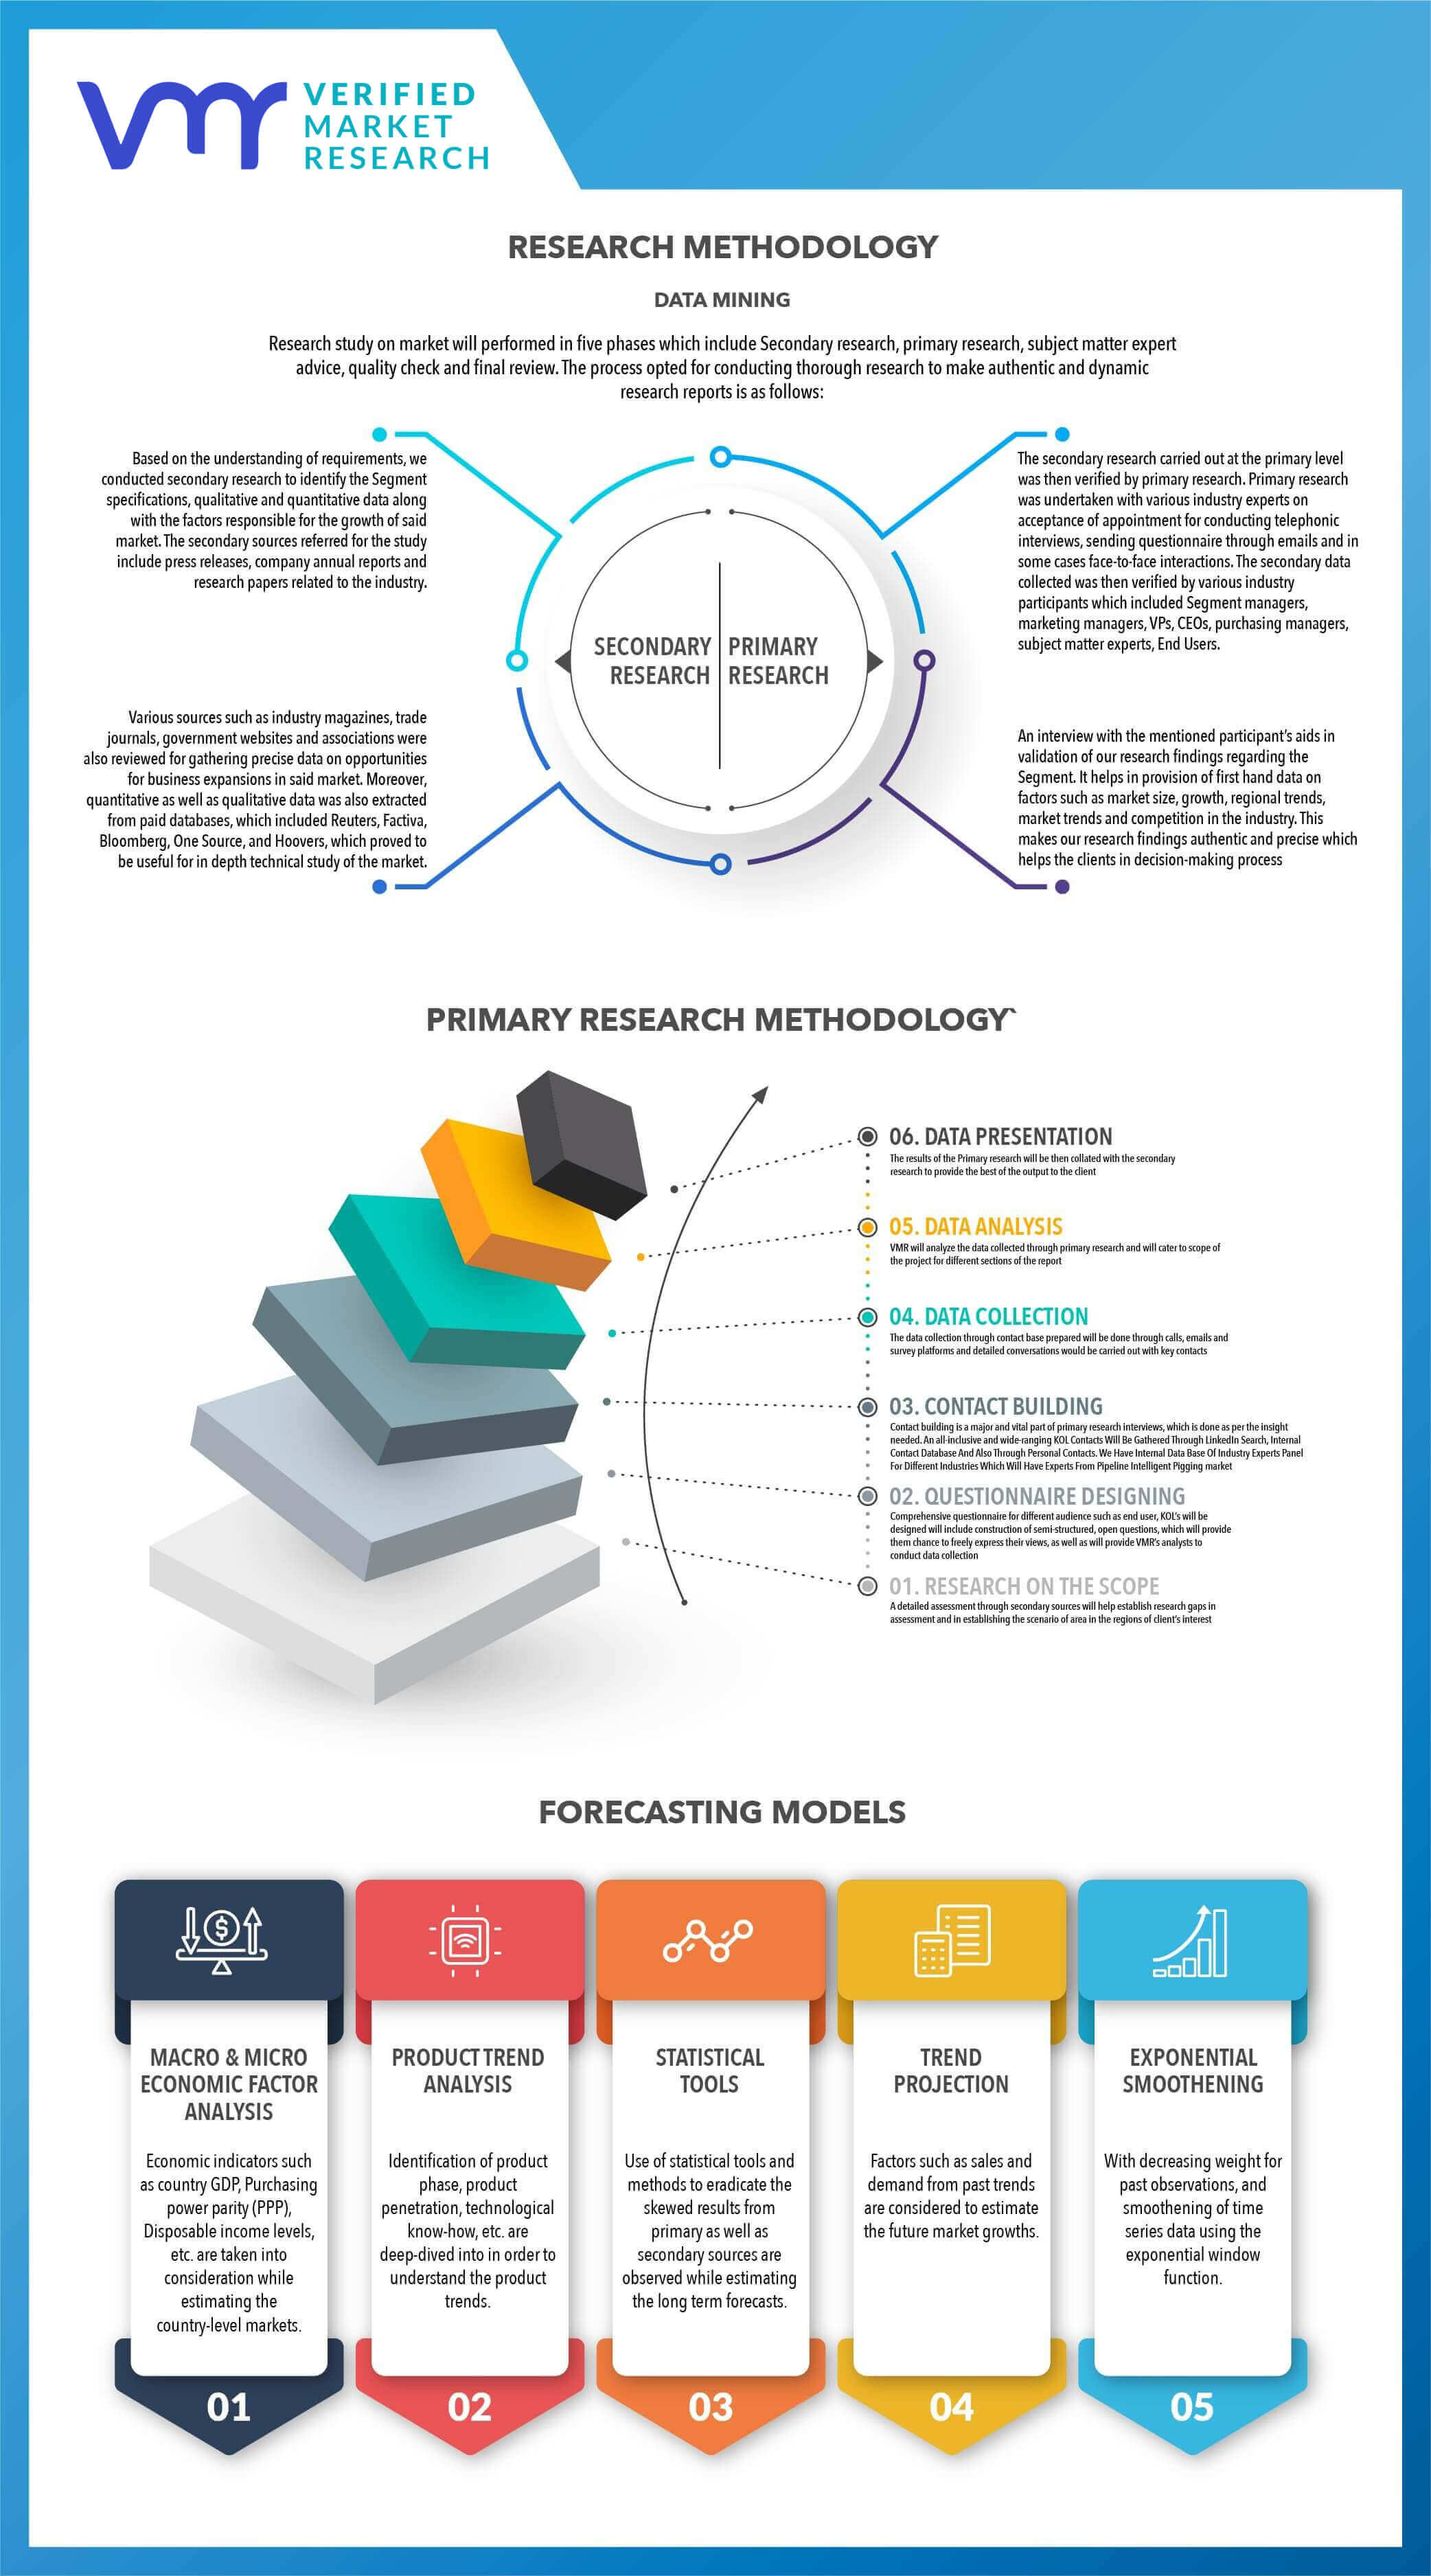 Research Methodology of VMR